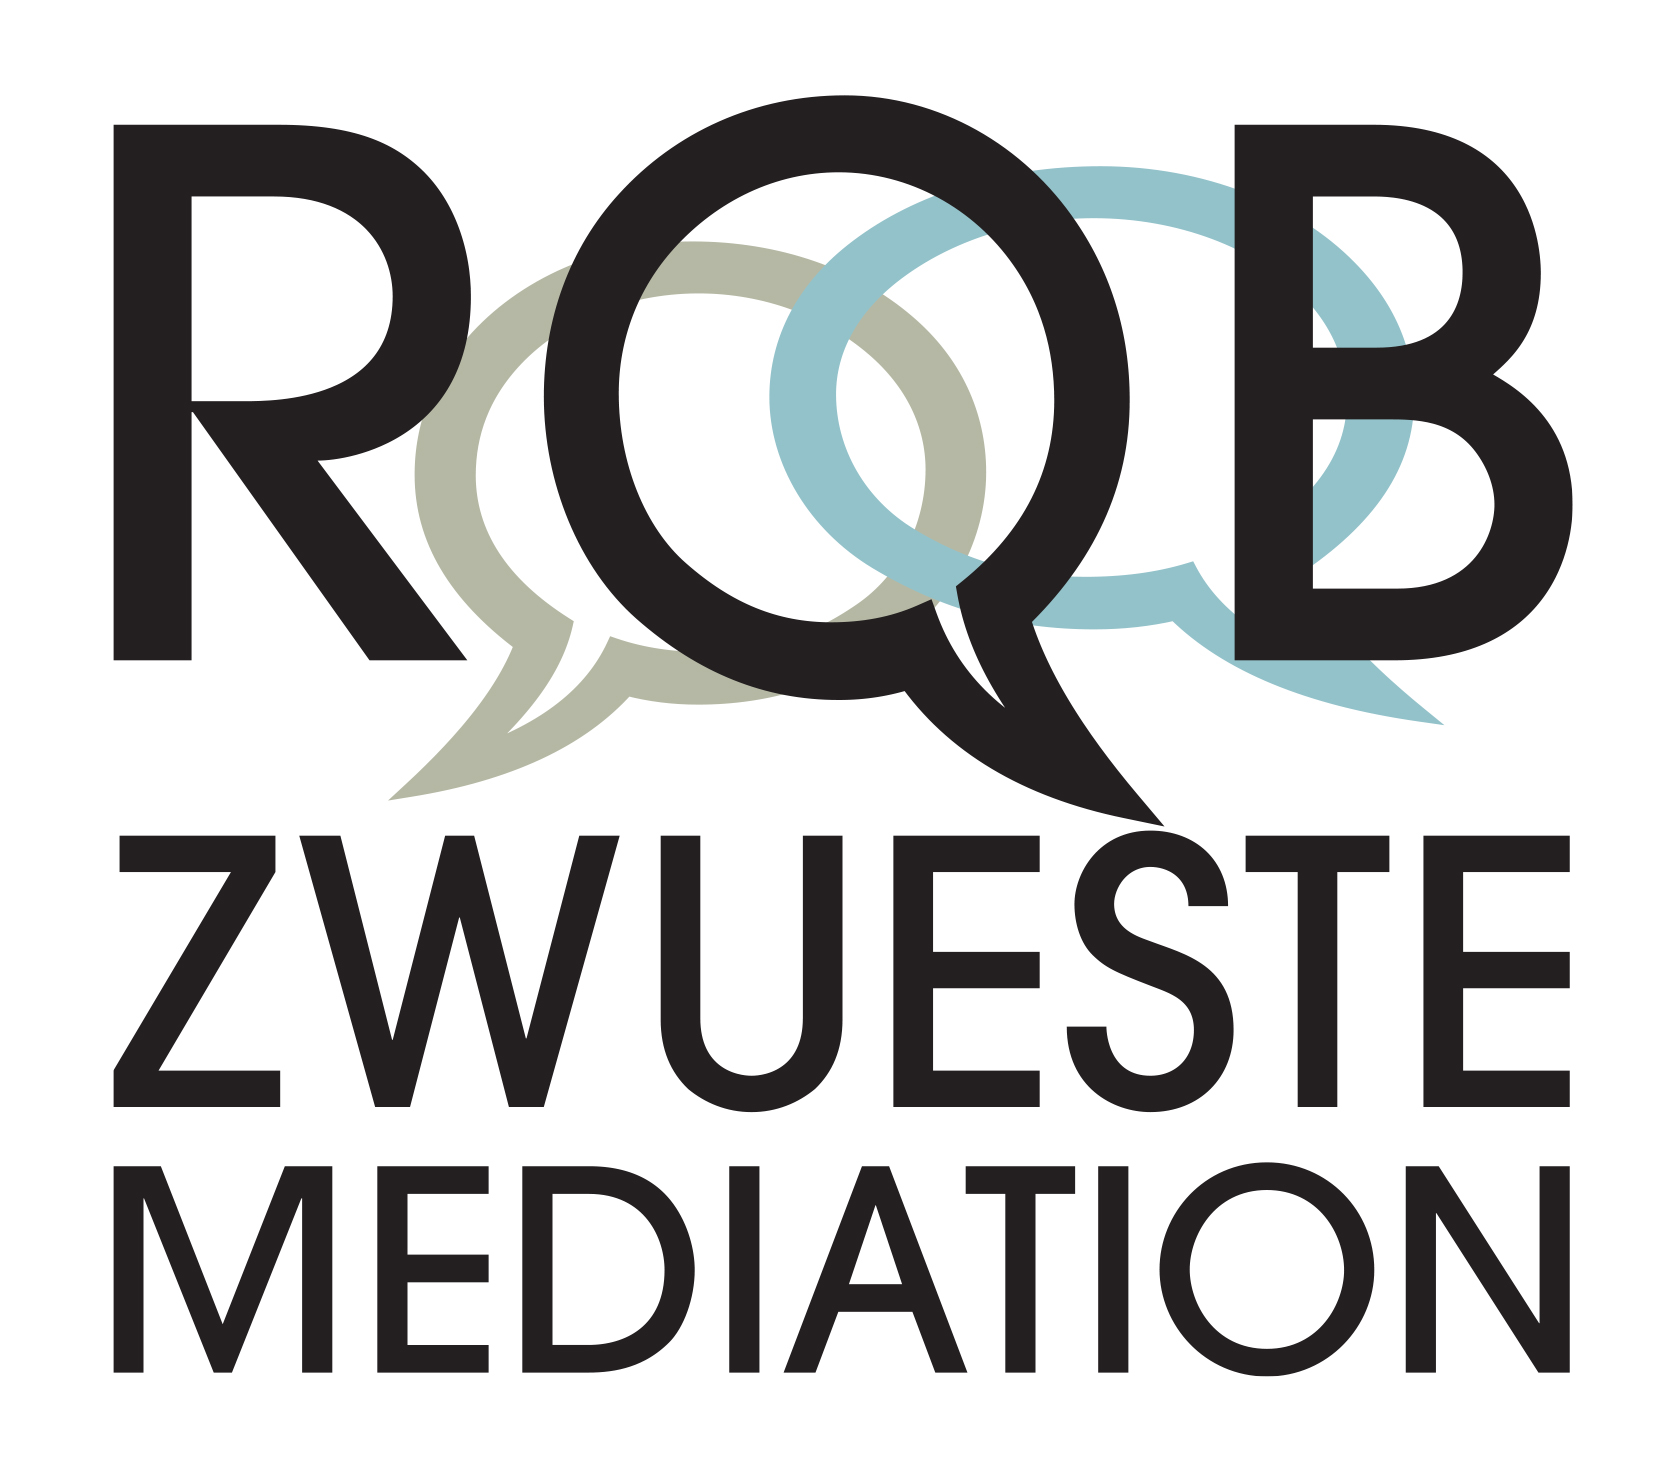 Rob Zwueste Mediation